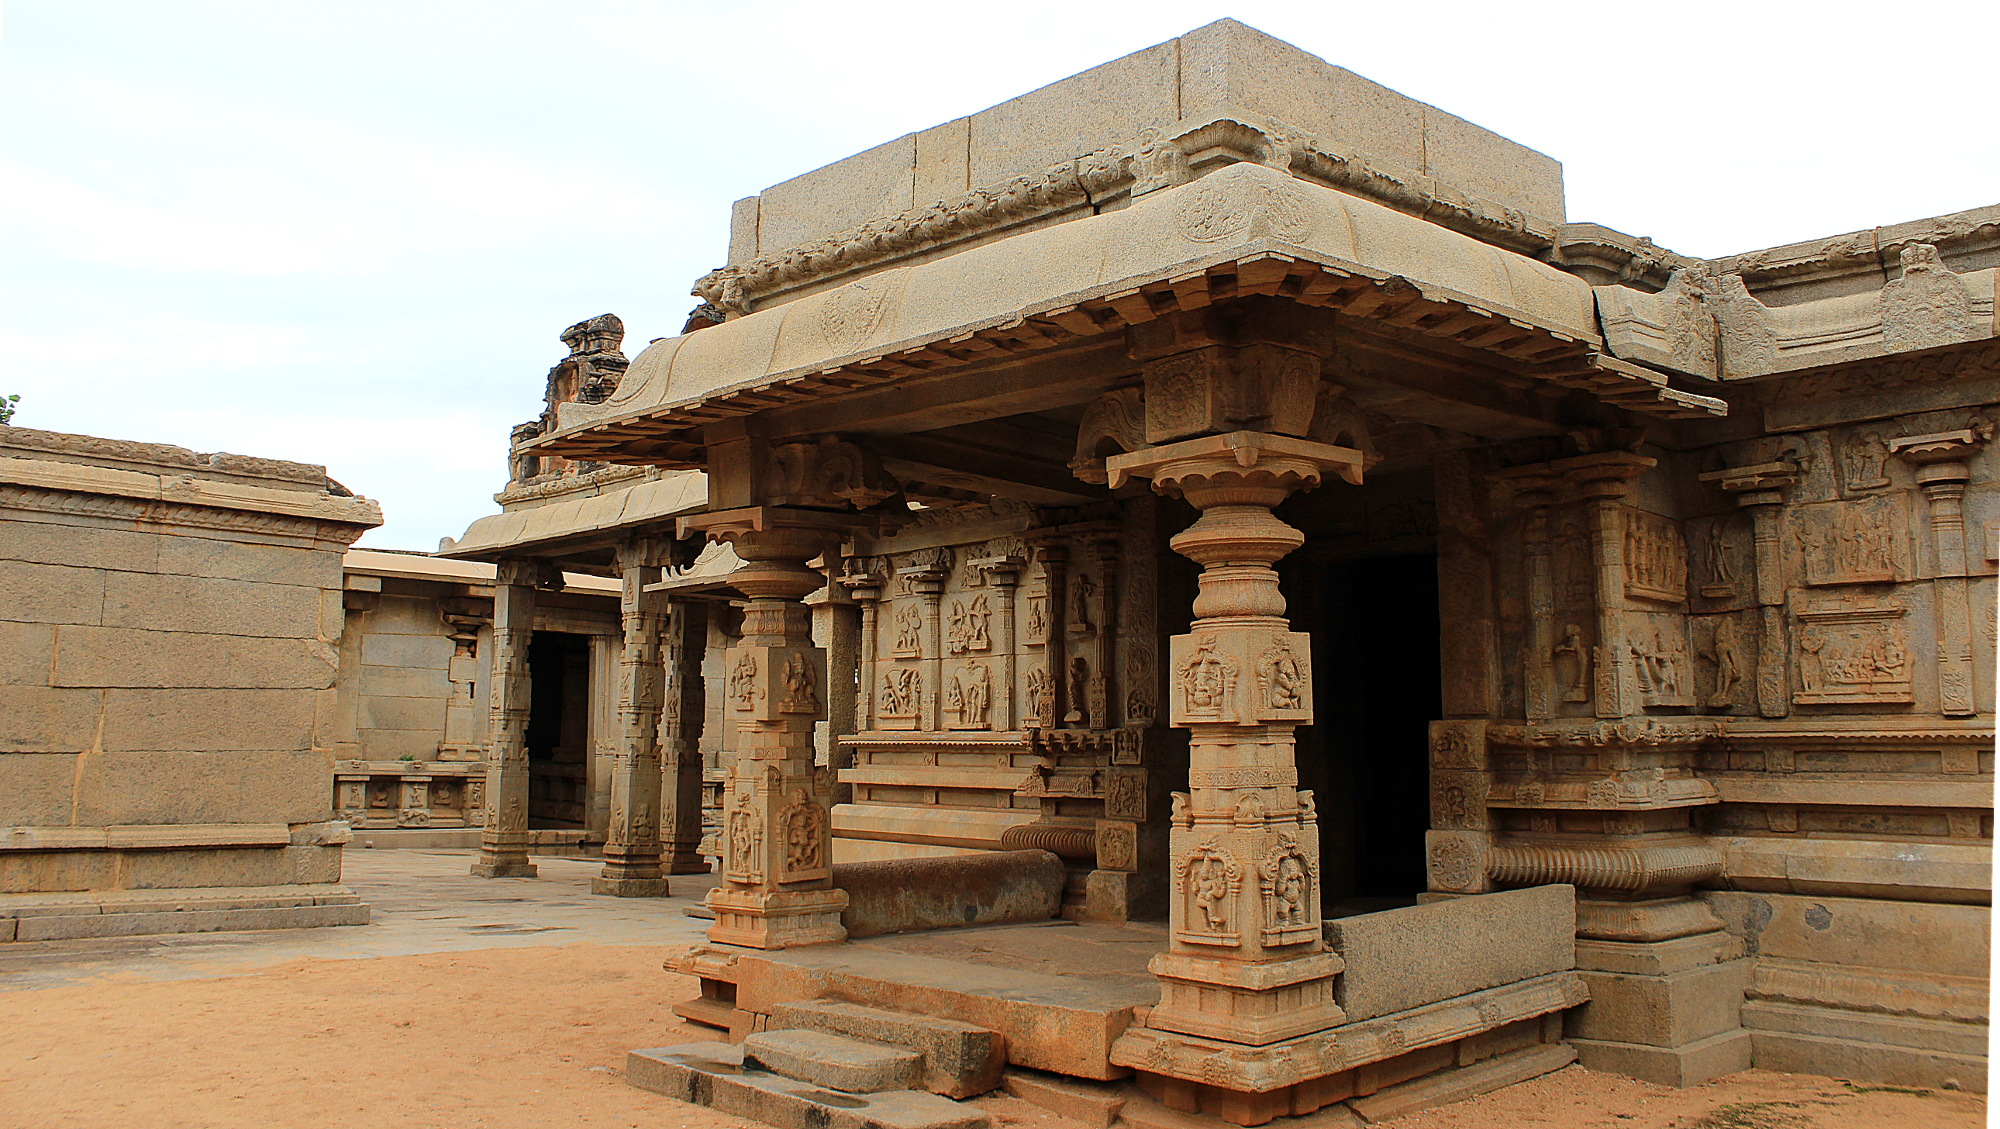 The ruins of Hampi. Light brown exterior of the Hazarama Temple with carved pillars.